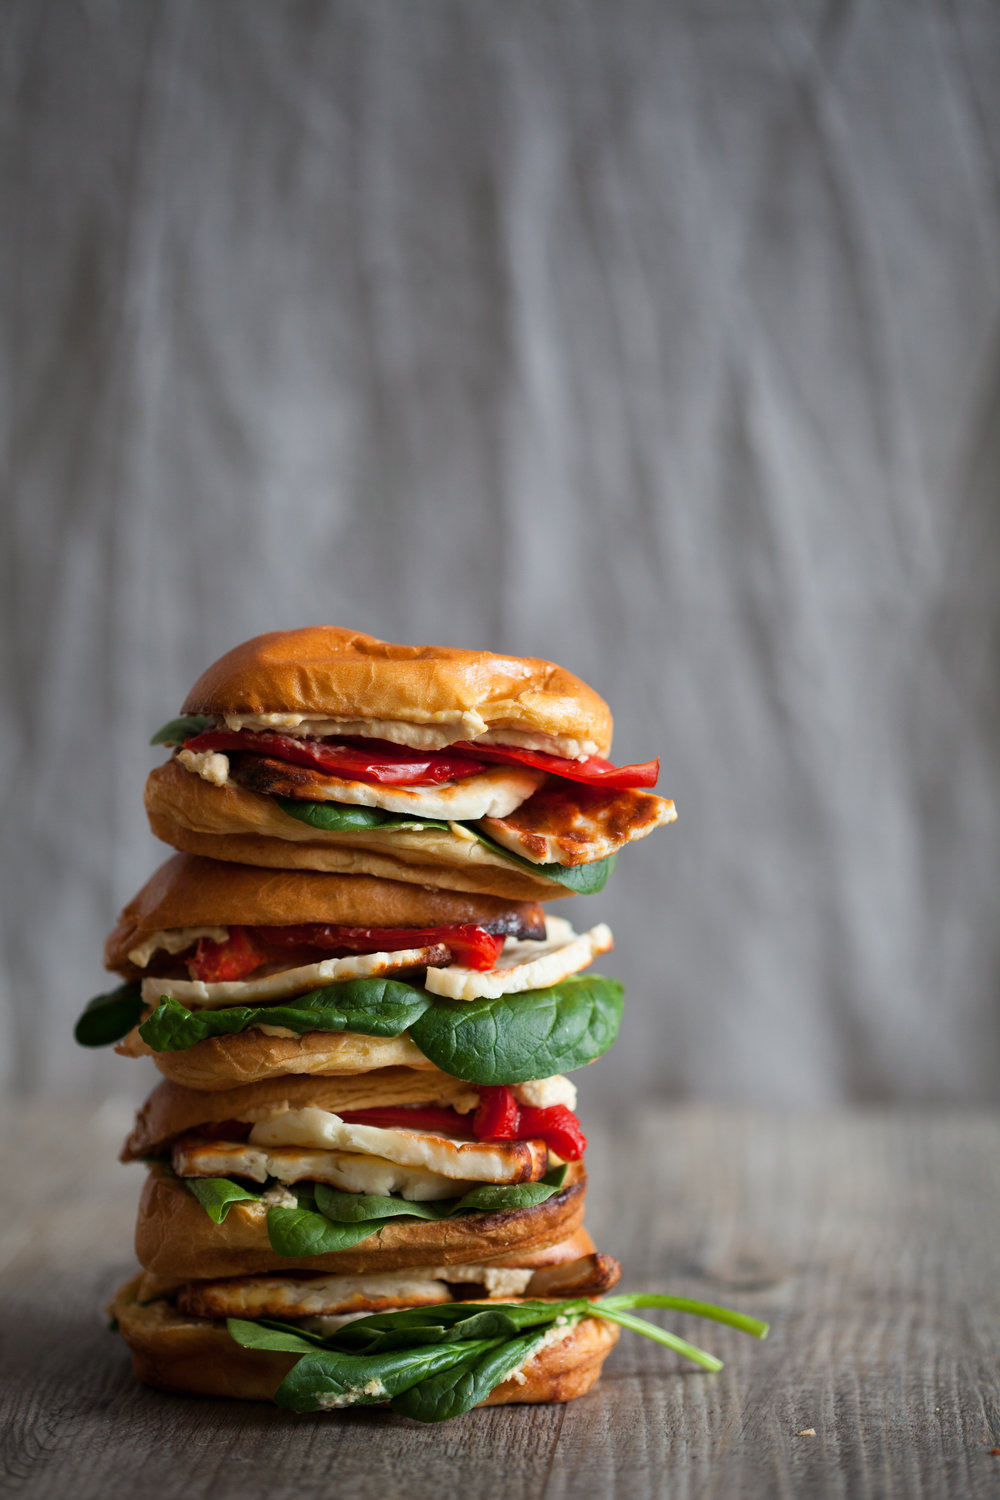 Solo Element. Placing to the left and keeping the background and surface neutral makes the stack really pop, particularly the reds and greens. The two stalks spilling out of the bottom bun, give balance and weigh down the image. This is classic rule of thirds.